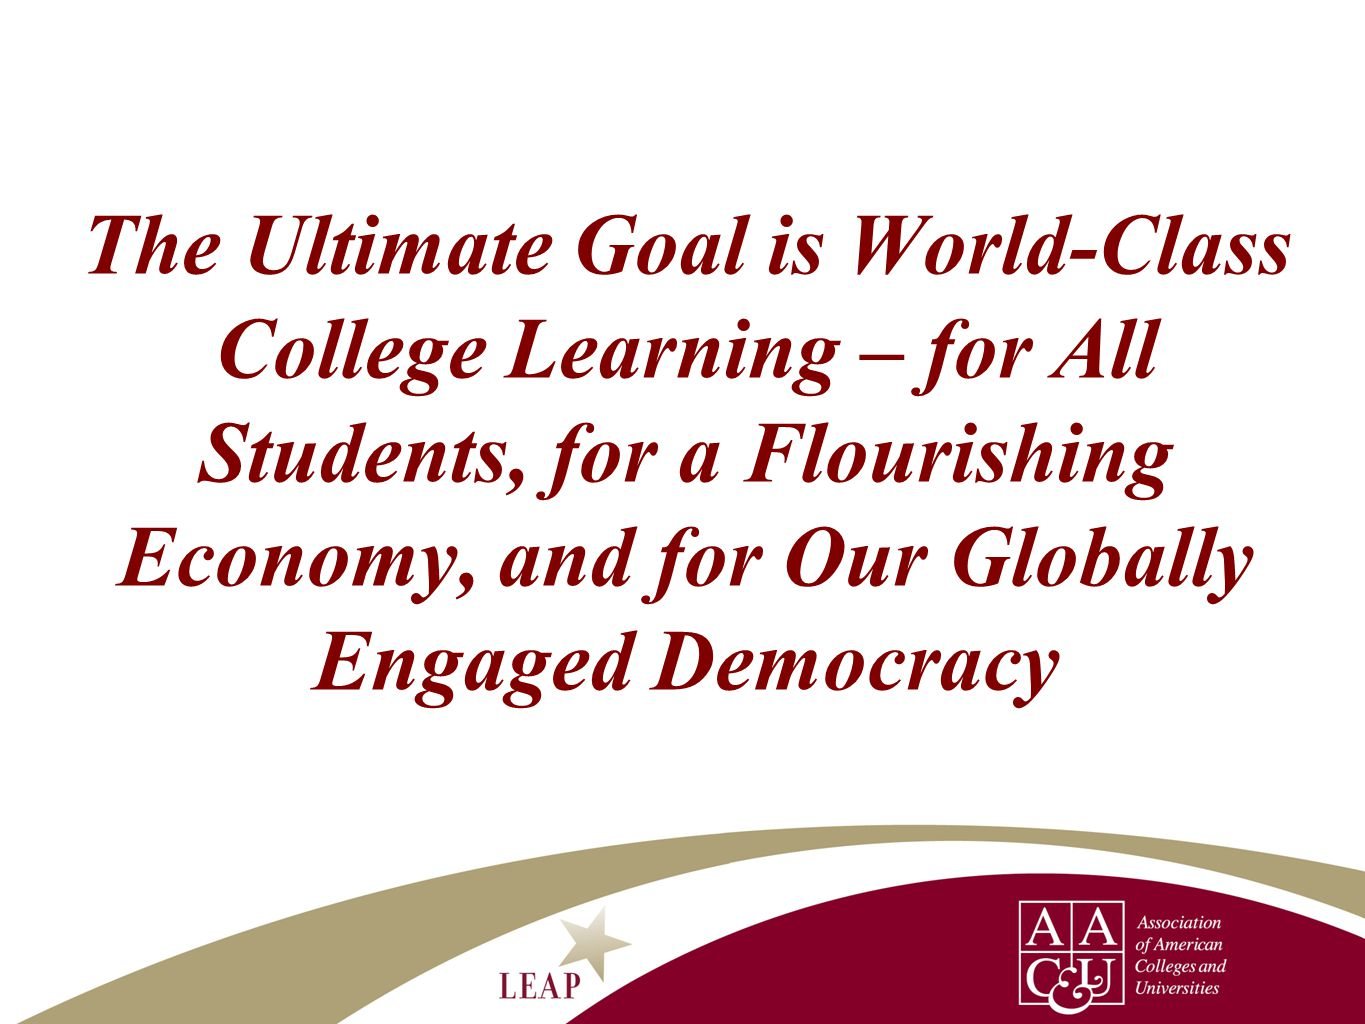 The Ultimate Goal is World-Class College Learning – for All Students, for a Flourishing Economy, and for Our Globally Engaged Democracy